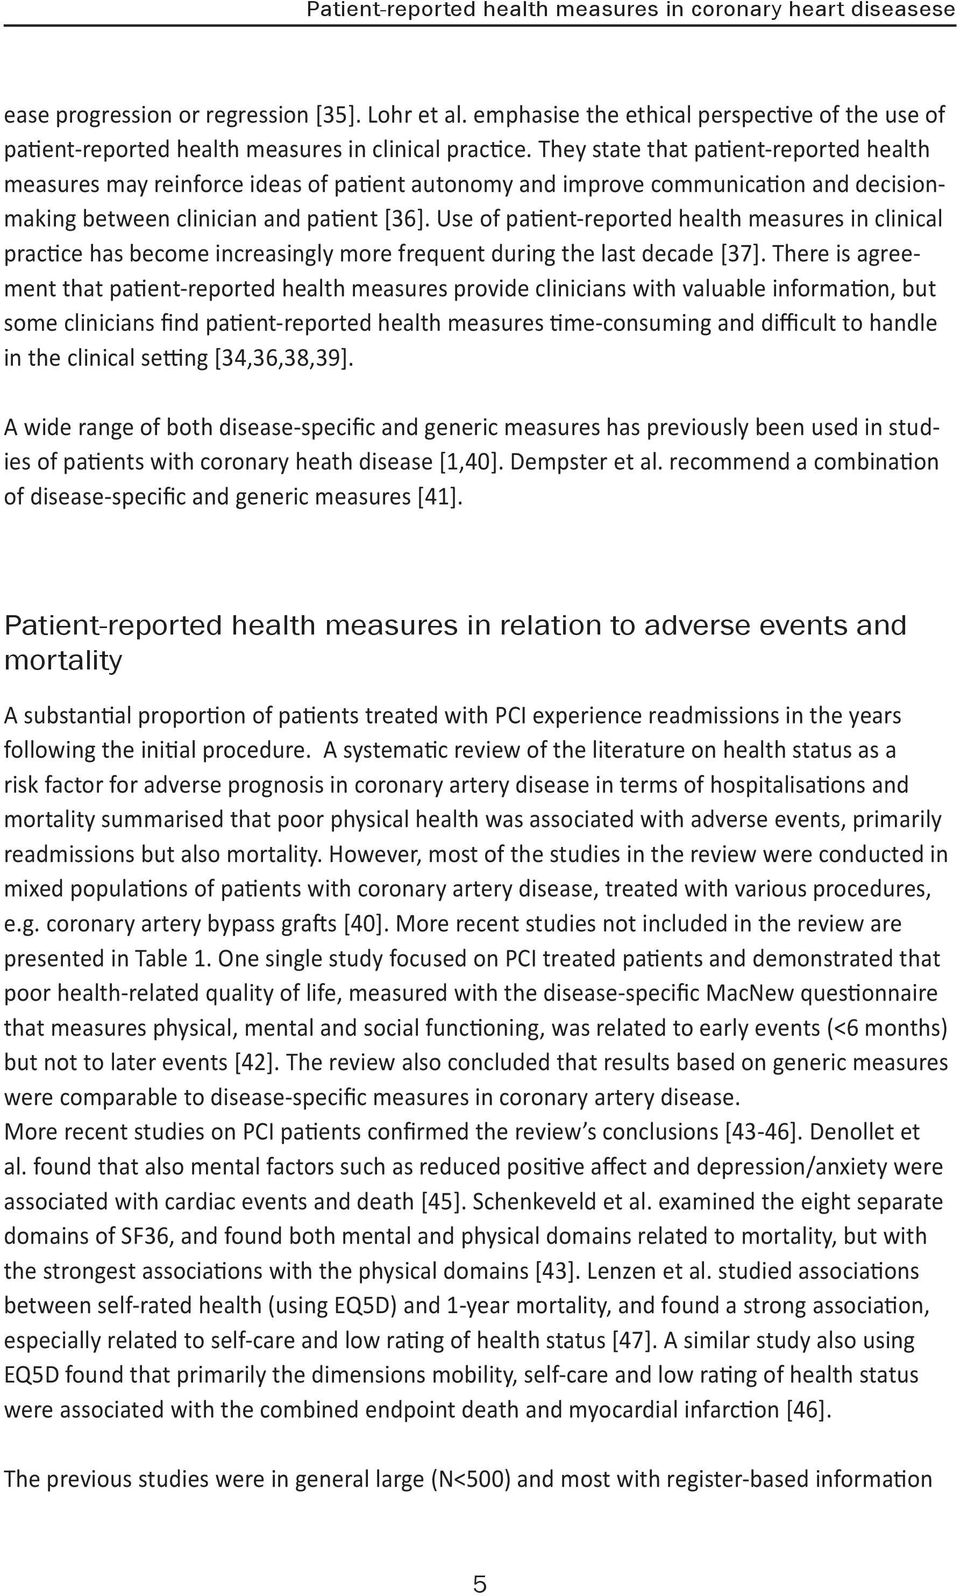 They state that patient-reported health measures may reinforce ideas of patient autonomy and improve communication and decisionmaking between clinician and patient [36].